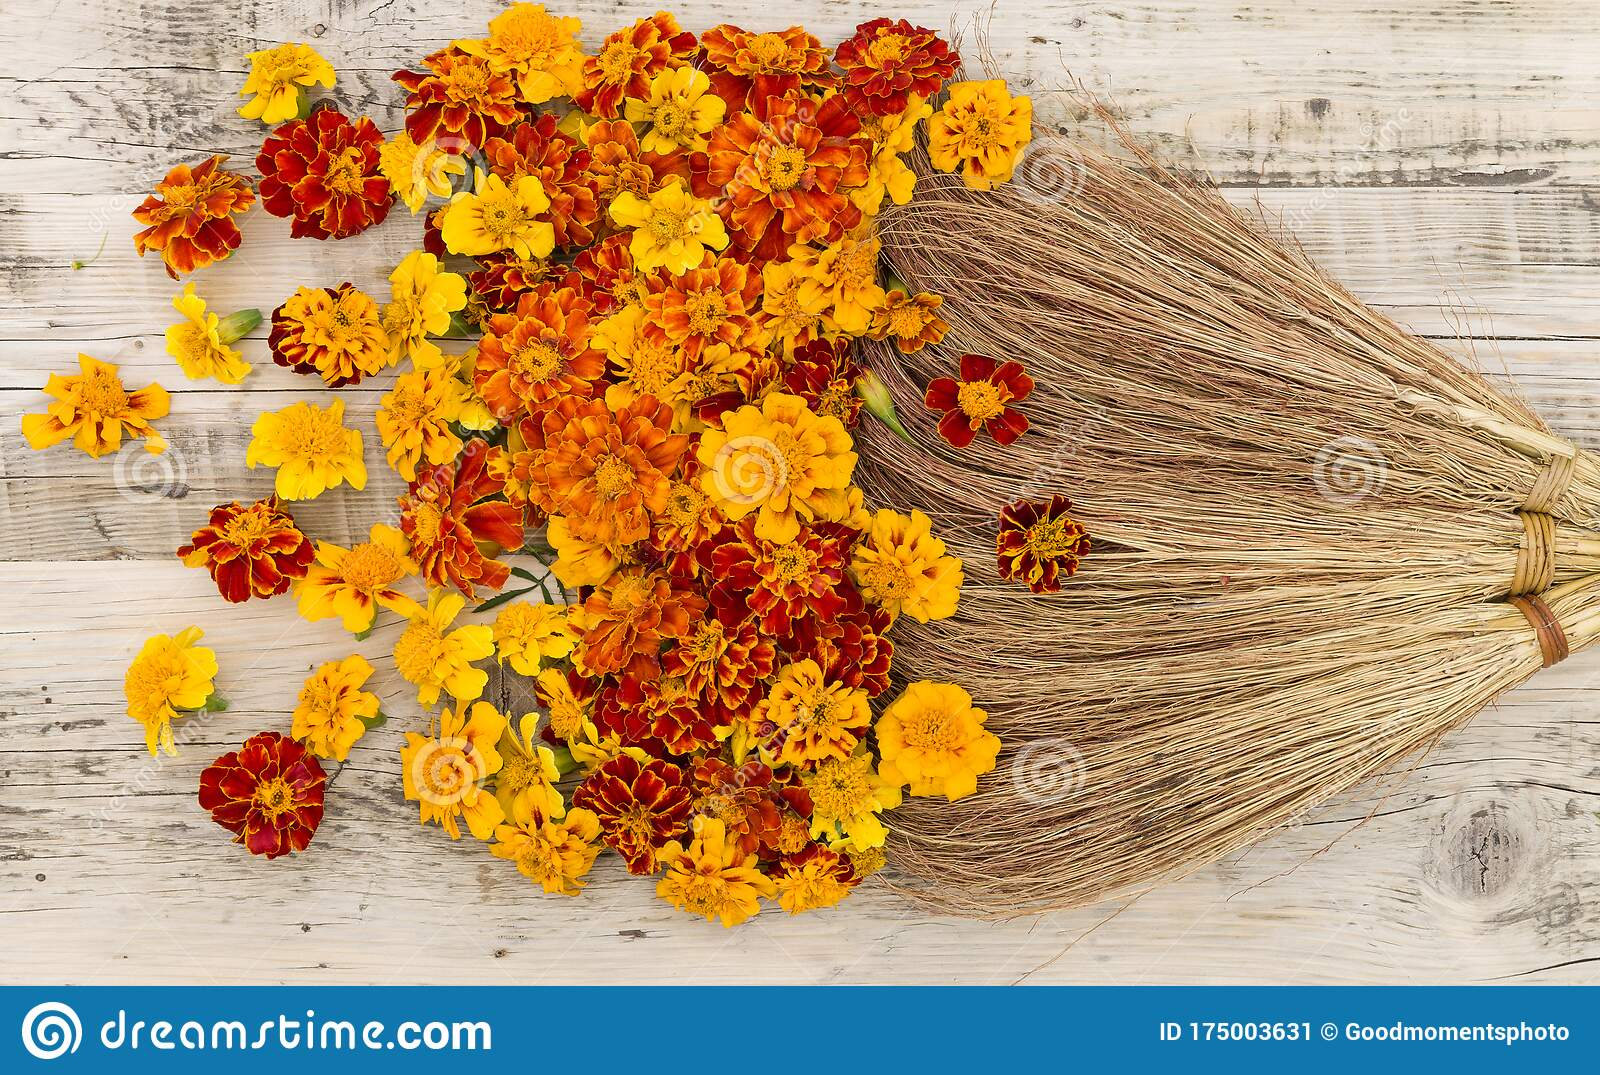 Top View On Old Styled Broom Sweeping Yellow Orange Amd Red Flowers On Wooden Background Marigolds Stock Image Image Of Offering Beauty 175003631